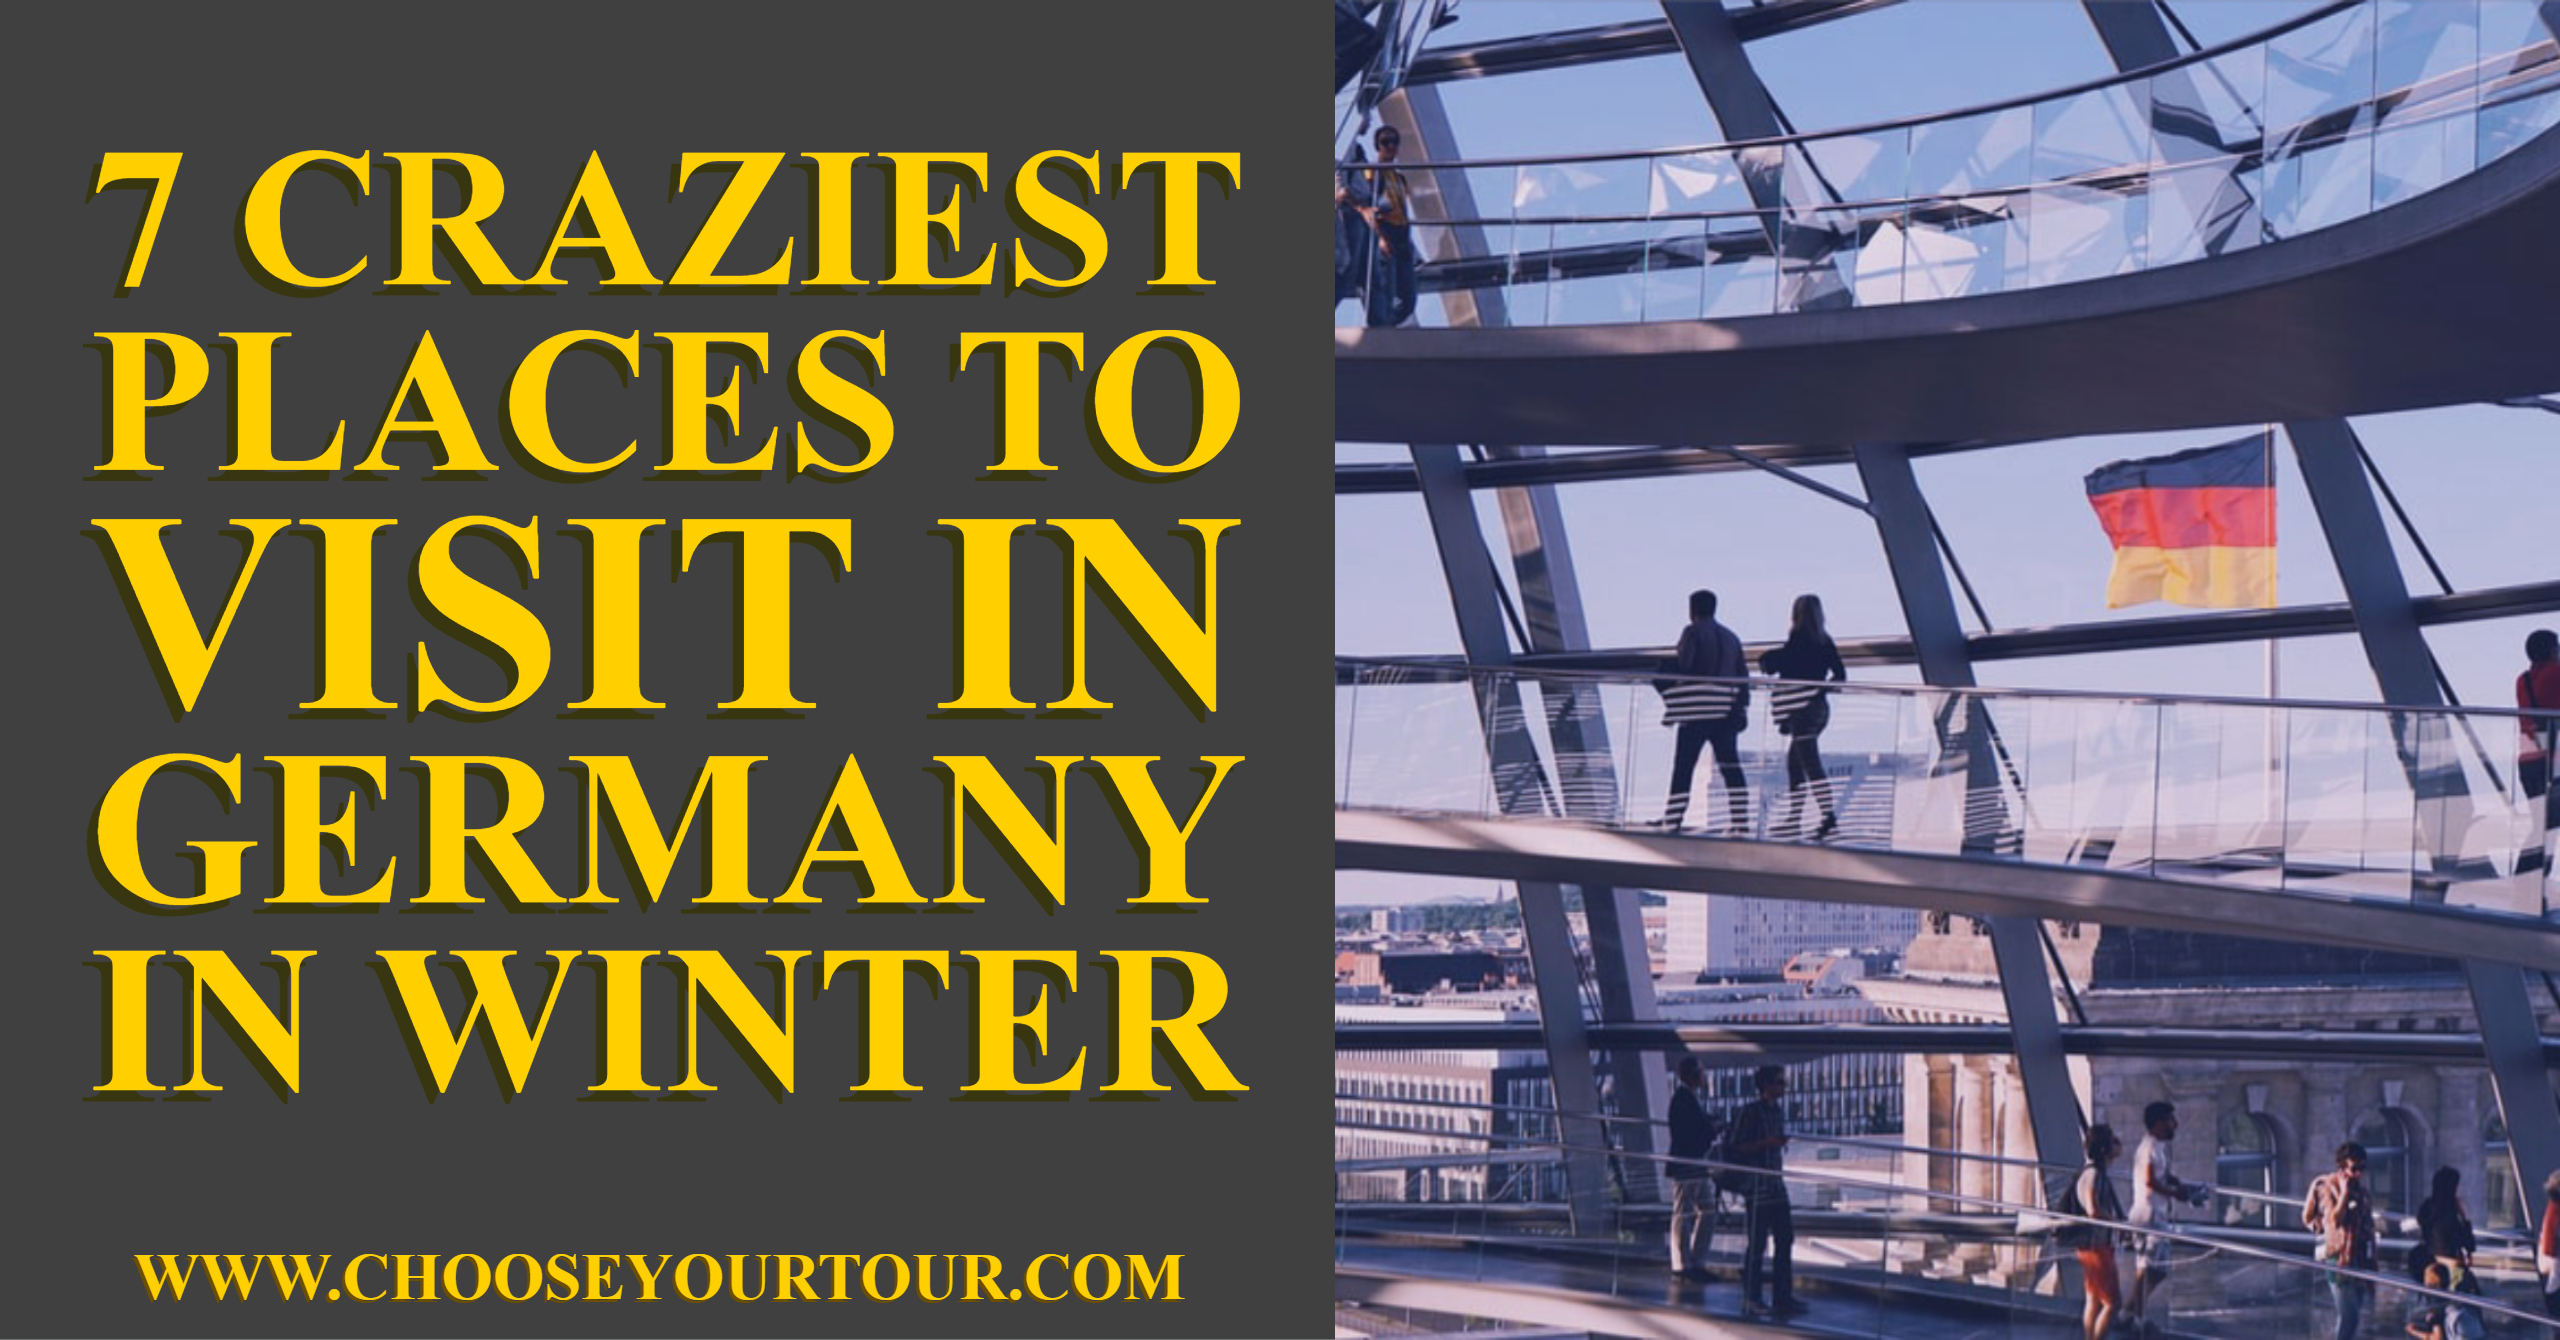 7 Craziest Places to Visit in Germany in Winter